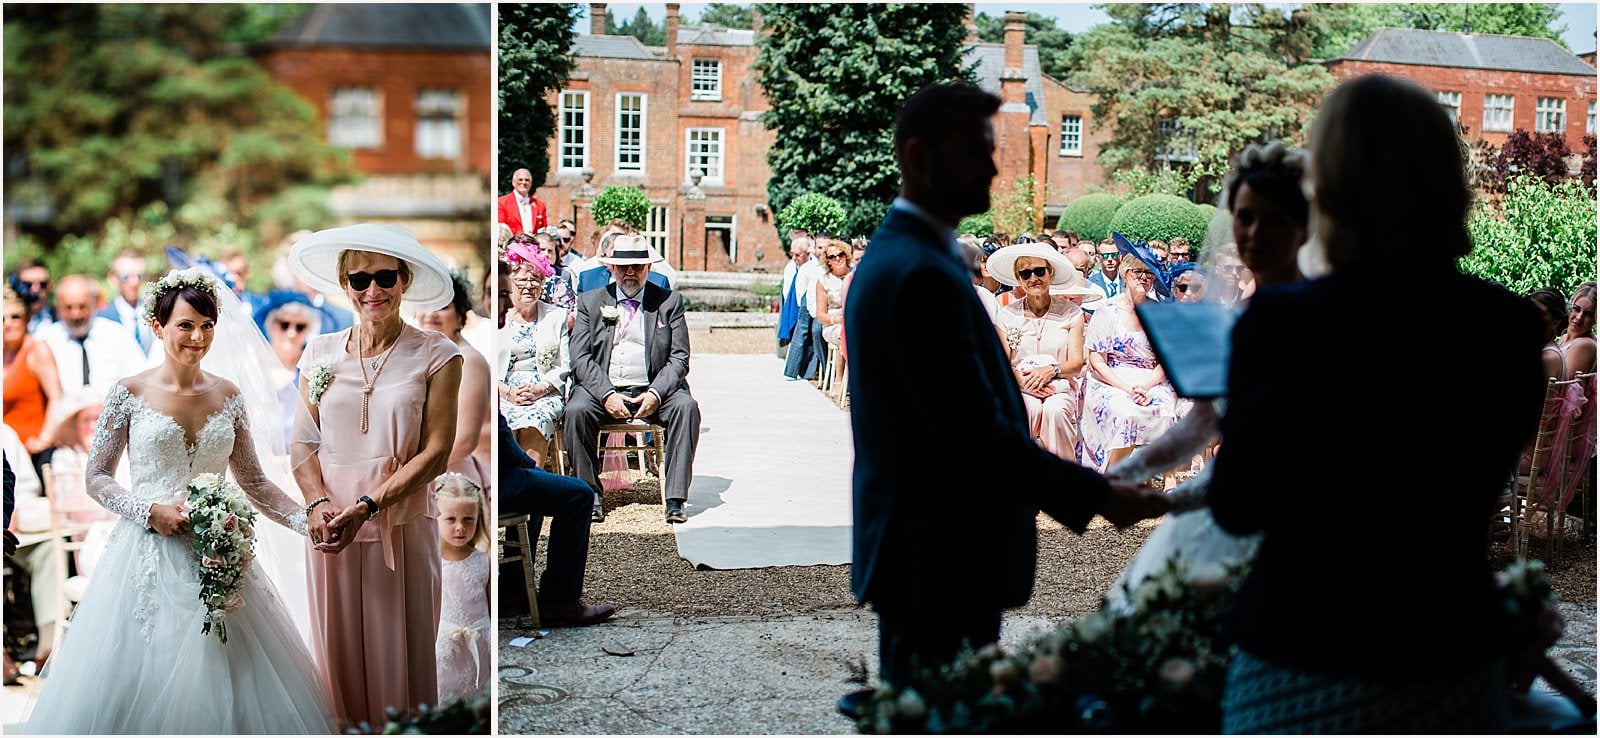 Wotton House Wedding - Justine + Rob's stunning wedding 24